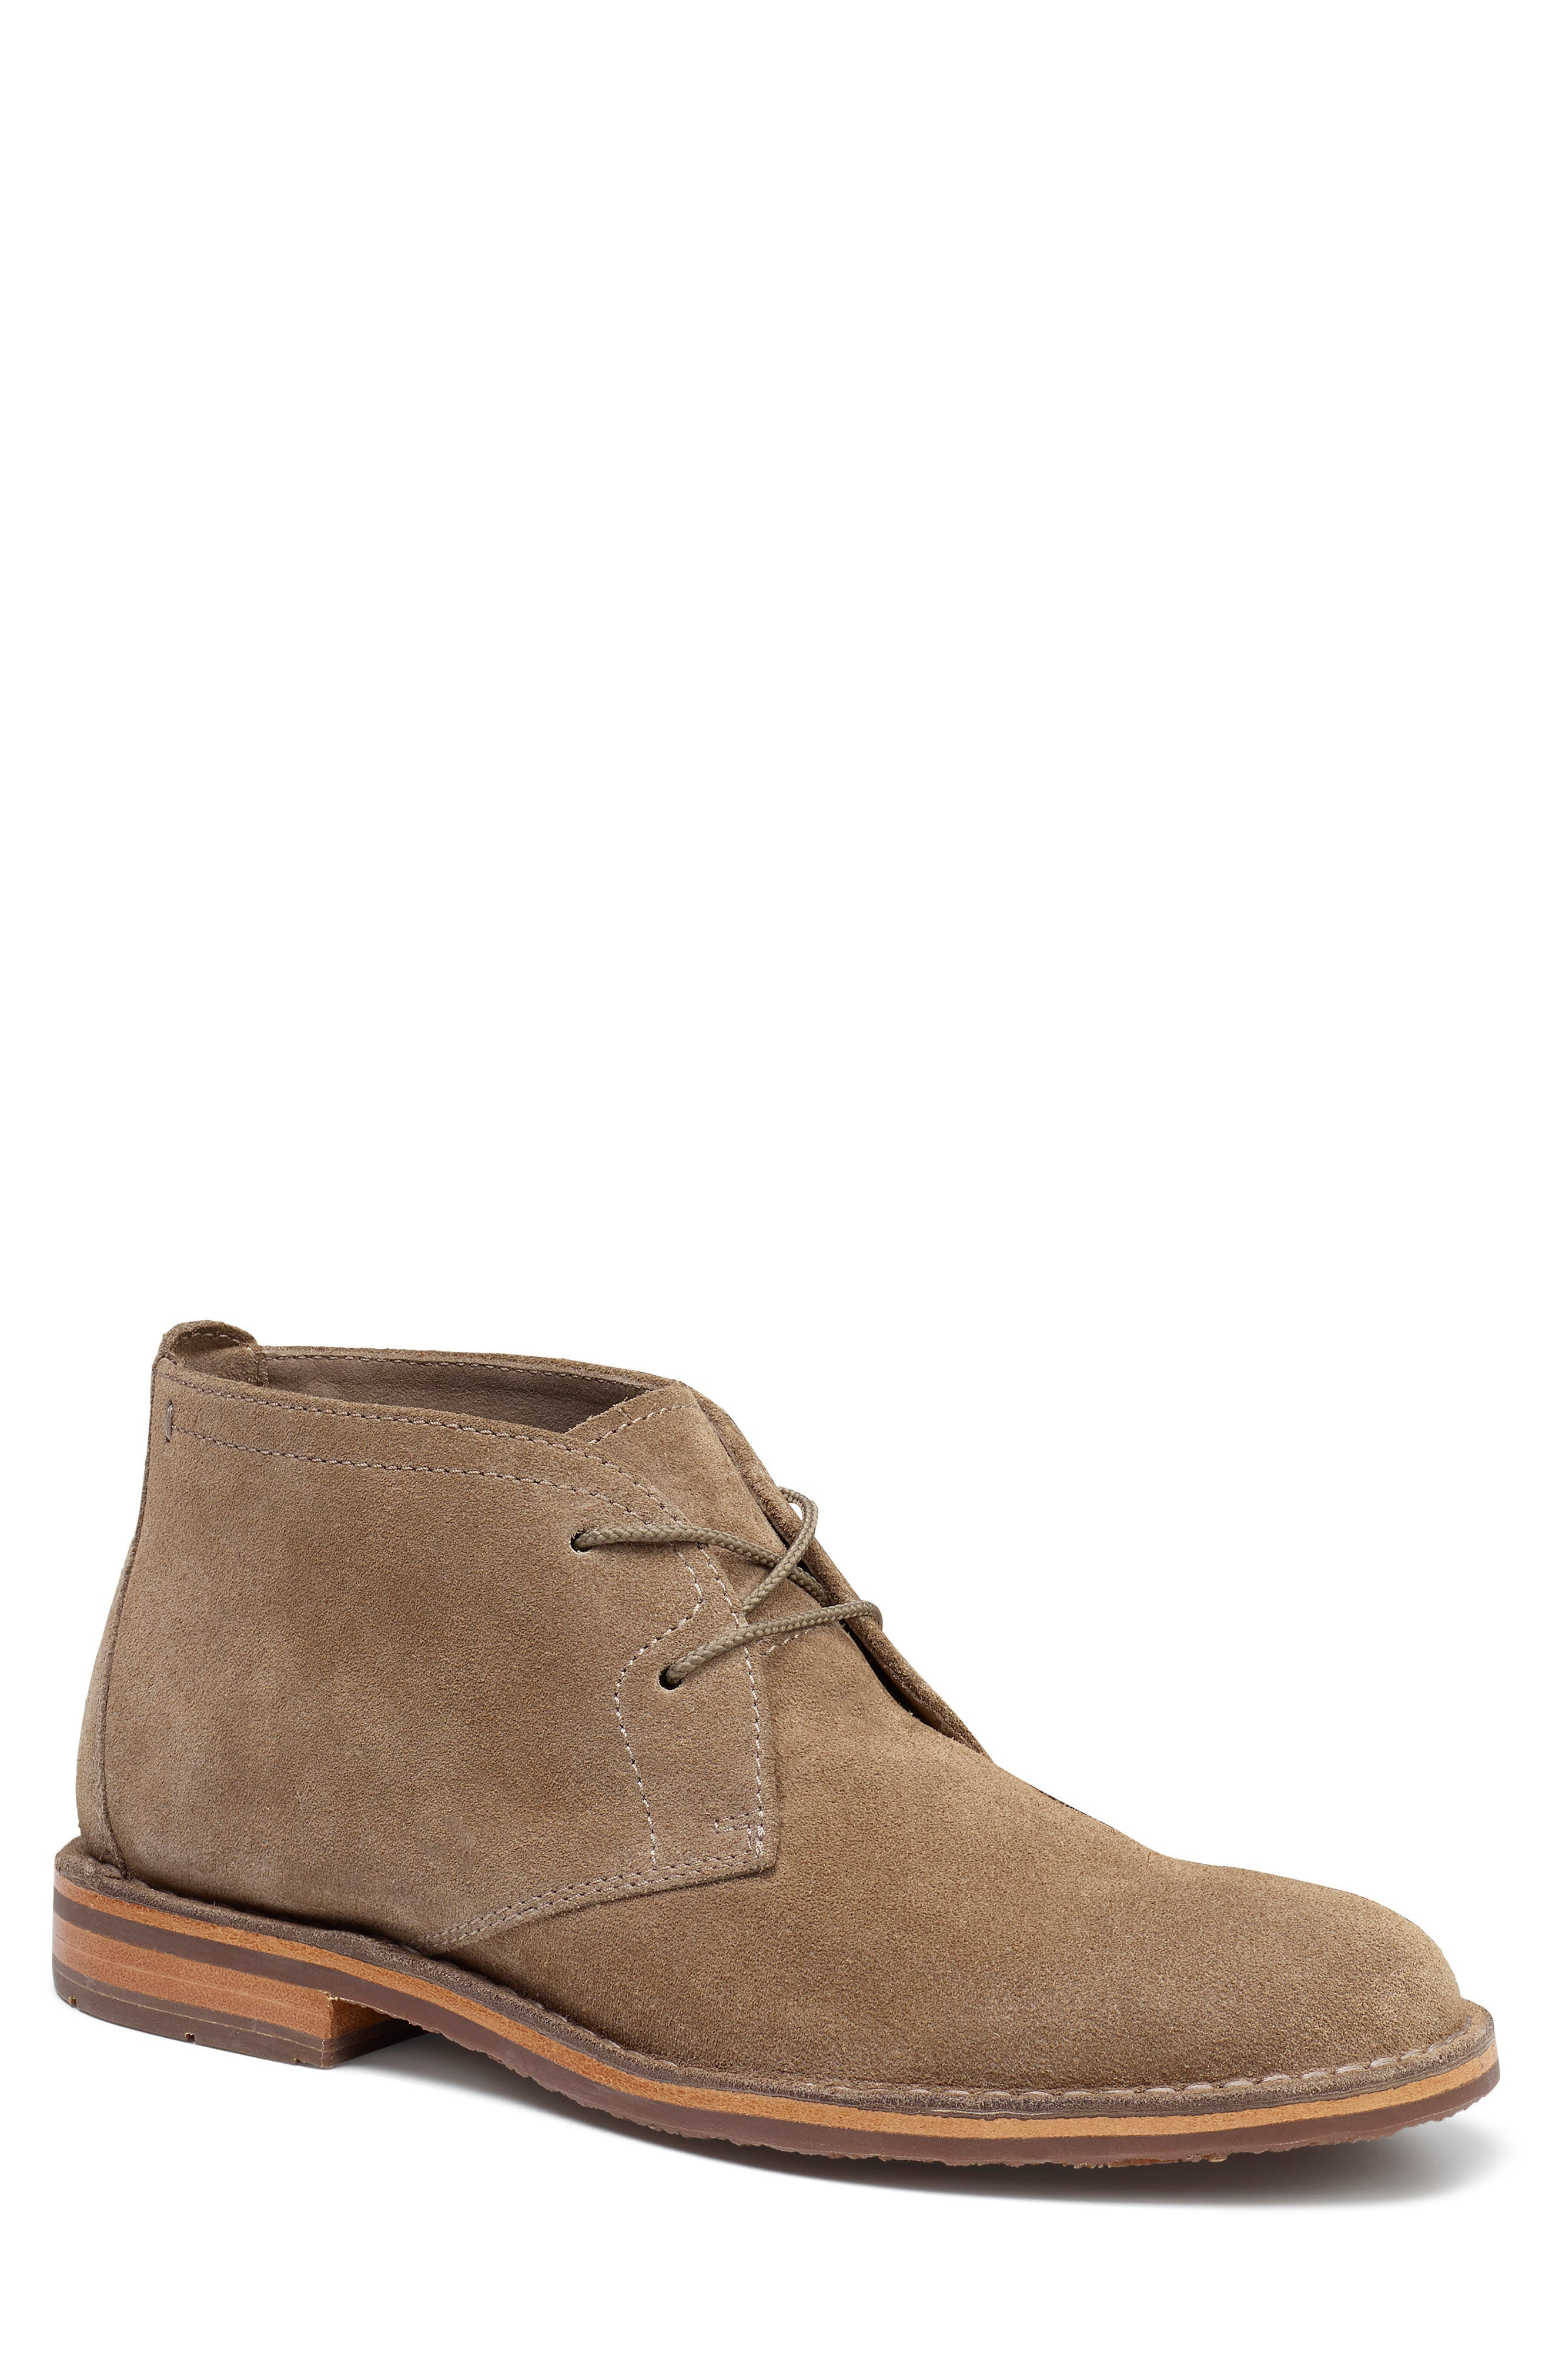 Rich materials and quality construction define a classic boot formed from supple suede or rich Norwegian Elk leather. Style Name: Trask \\\'Brady\\\' Chukka Boot (Men). Style Number: 1042544 11. Available in stores.